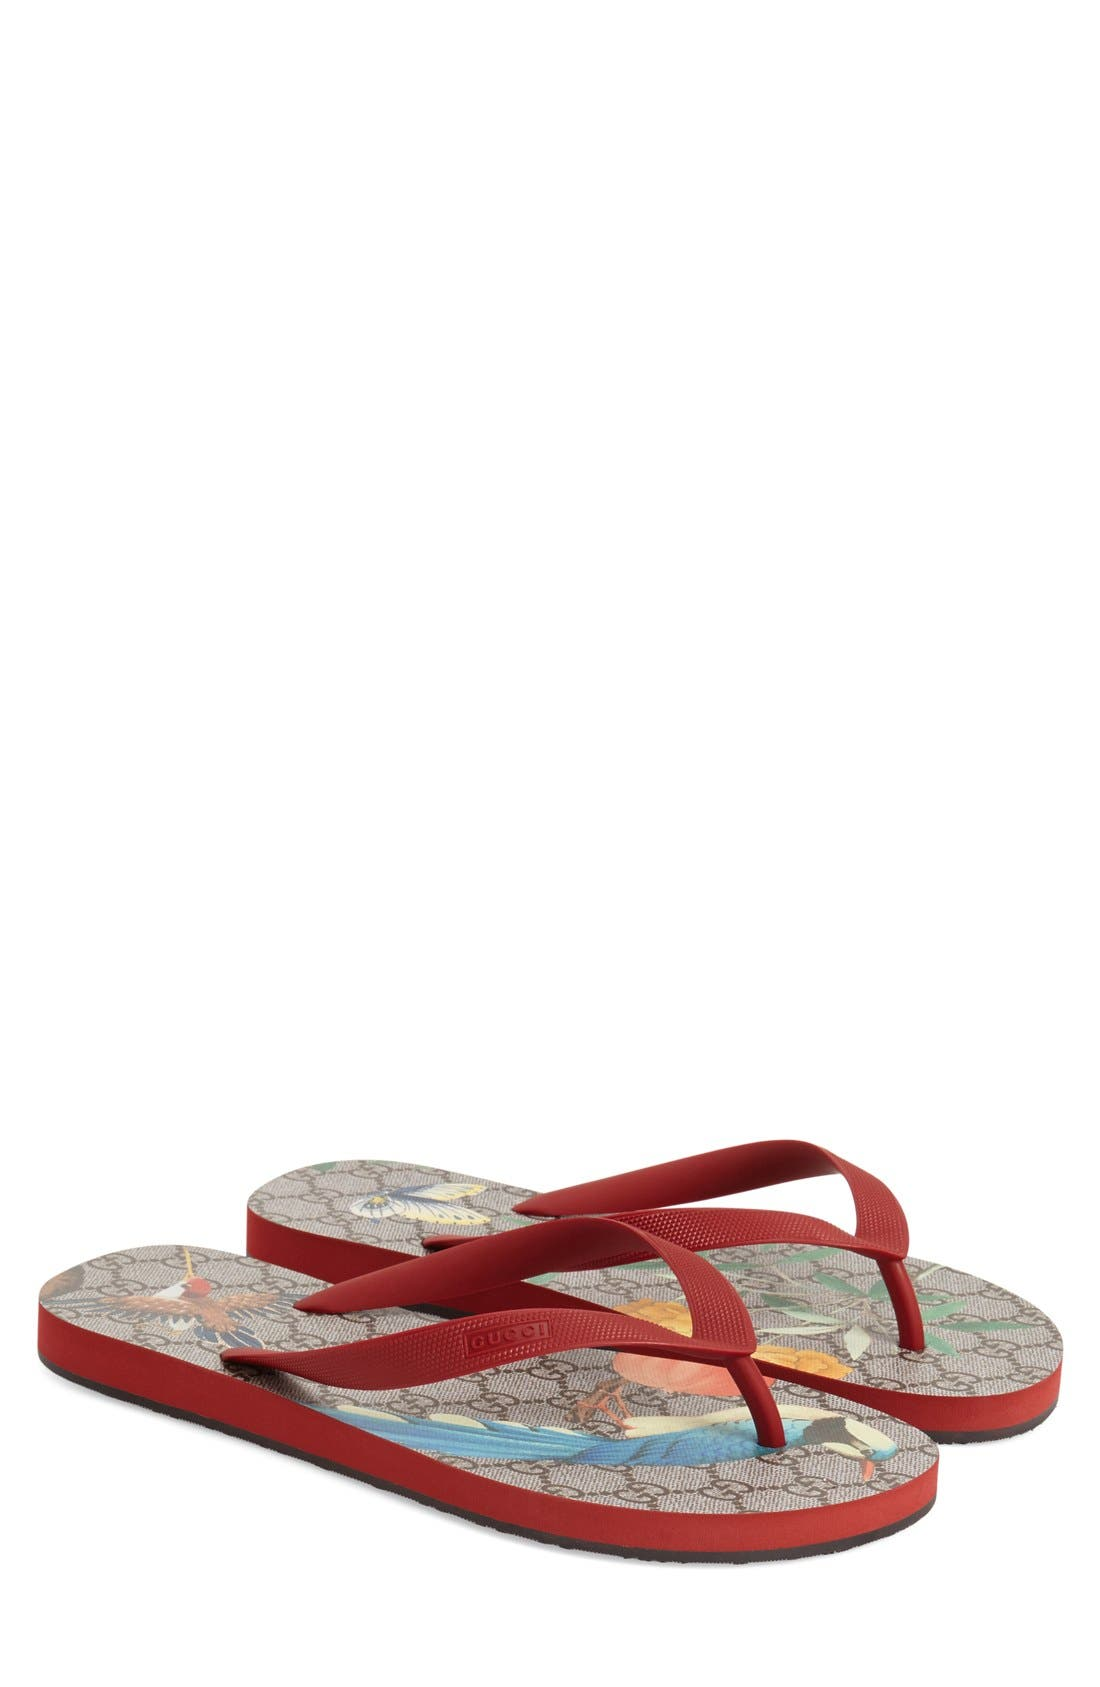 Main Image - Gucci 'Bedlam' Flip Flop (Men)